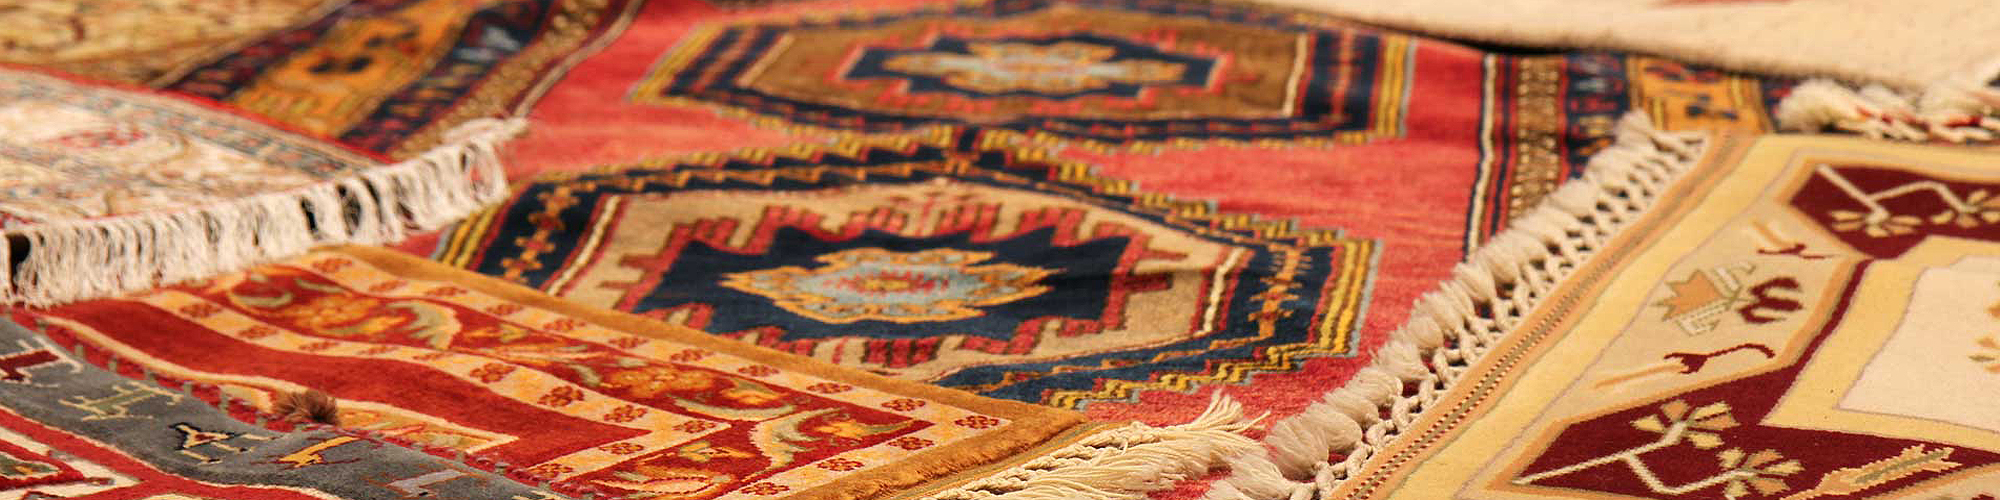 Professional Rug Repair and Restoration Services